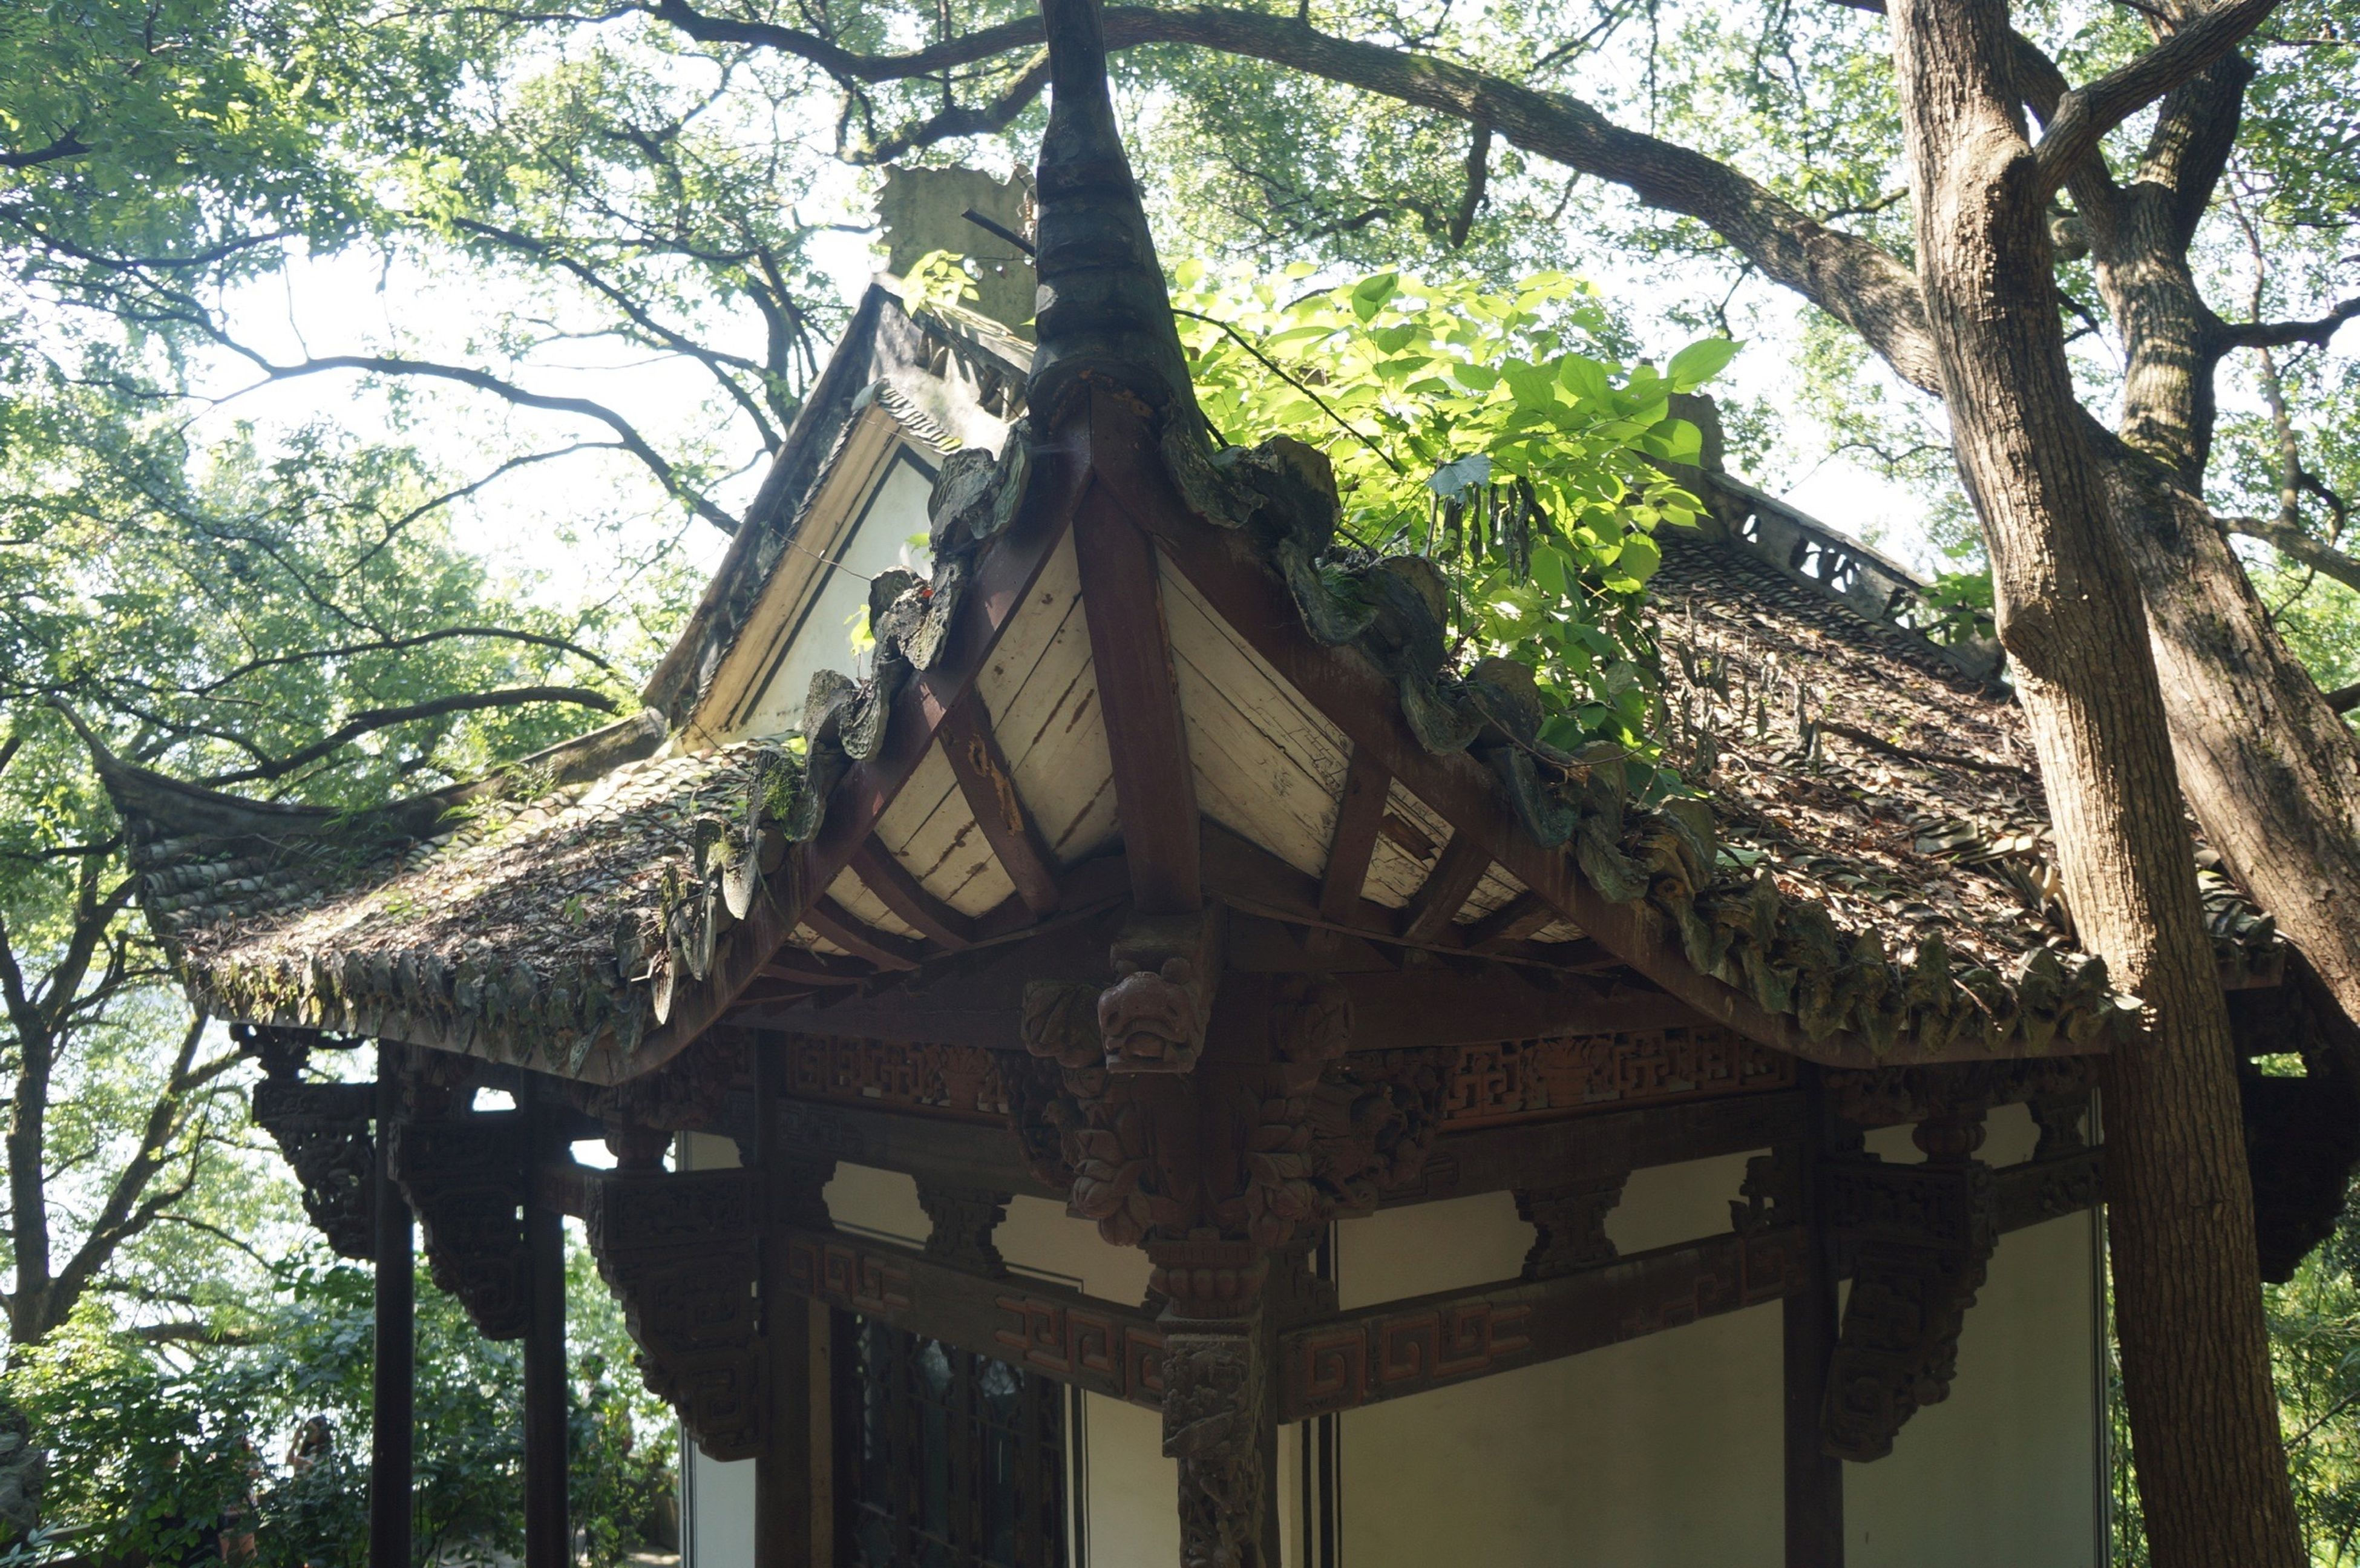 tree, low angle view, built structure, architecture, building exterior, branch, sky, place of worship, day, history, religion, outdoors, growth, no people, roof, tree trunk, spirituality, travel destinations, old, architectural feature